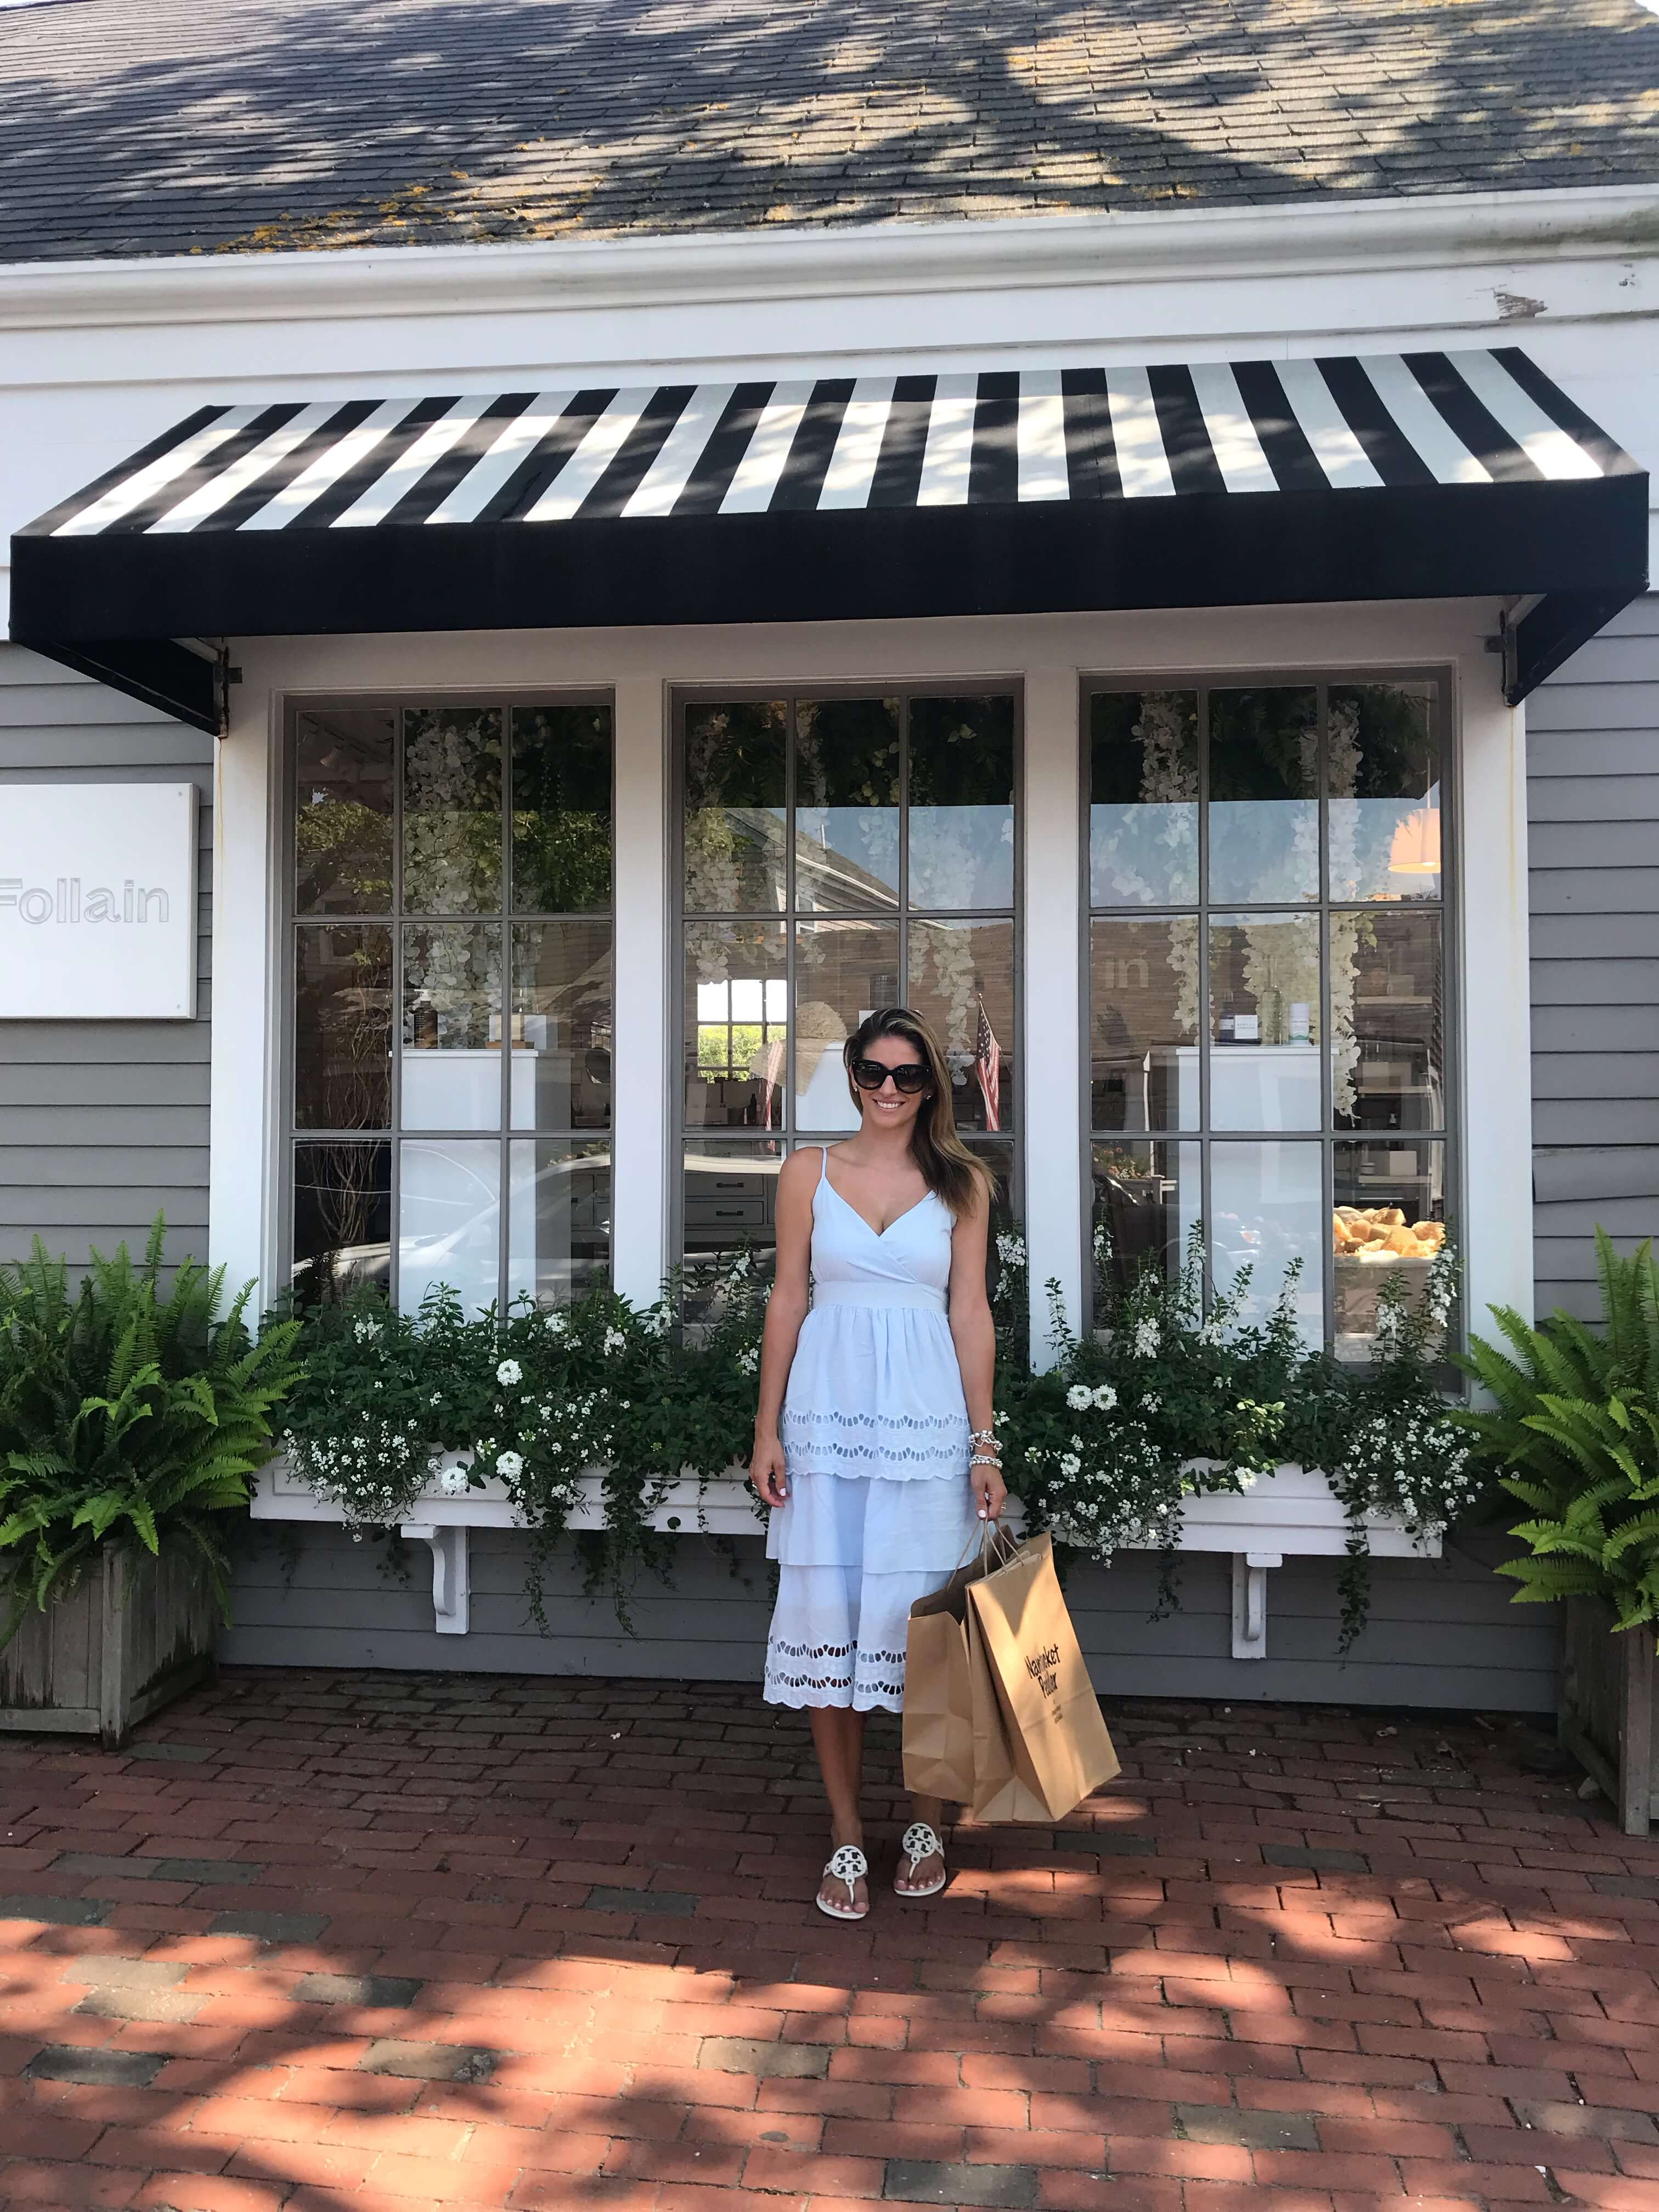 White Elephant Hotel Nantucket Review sparkleshinylove